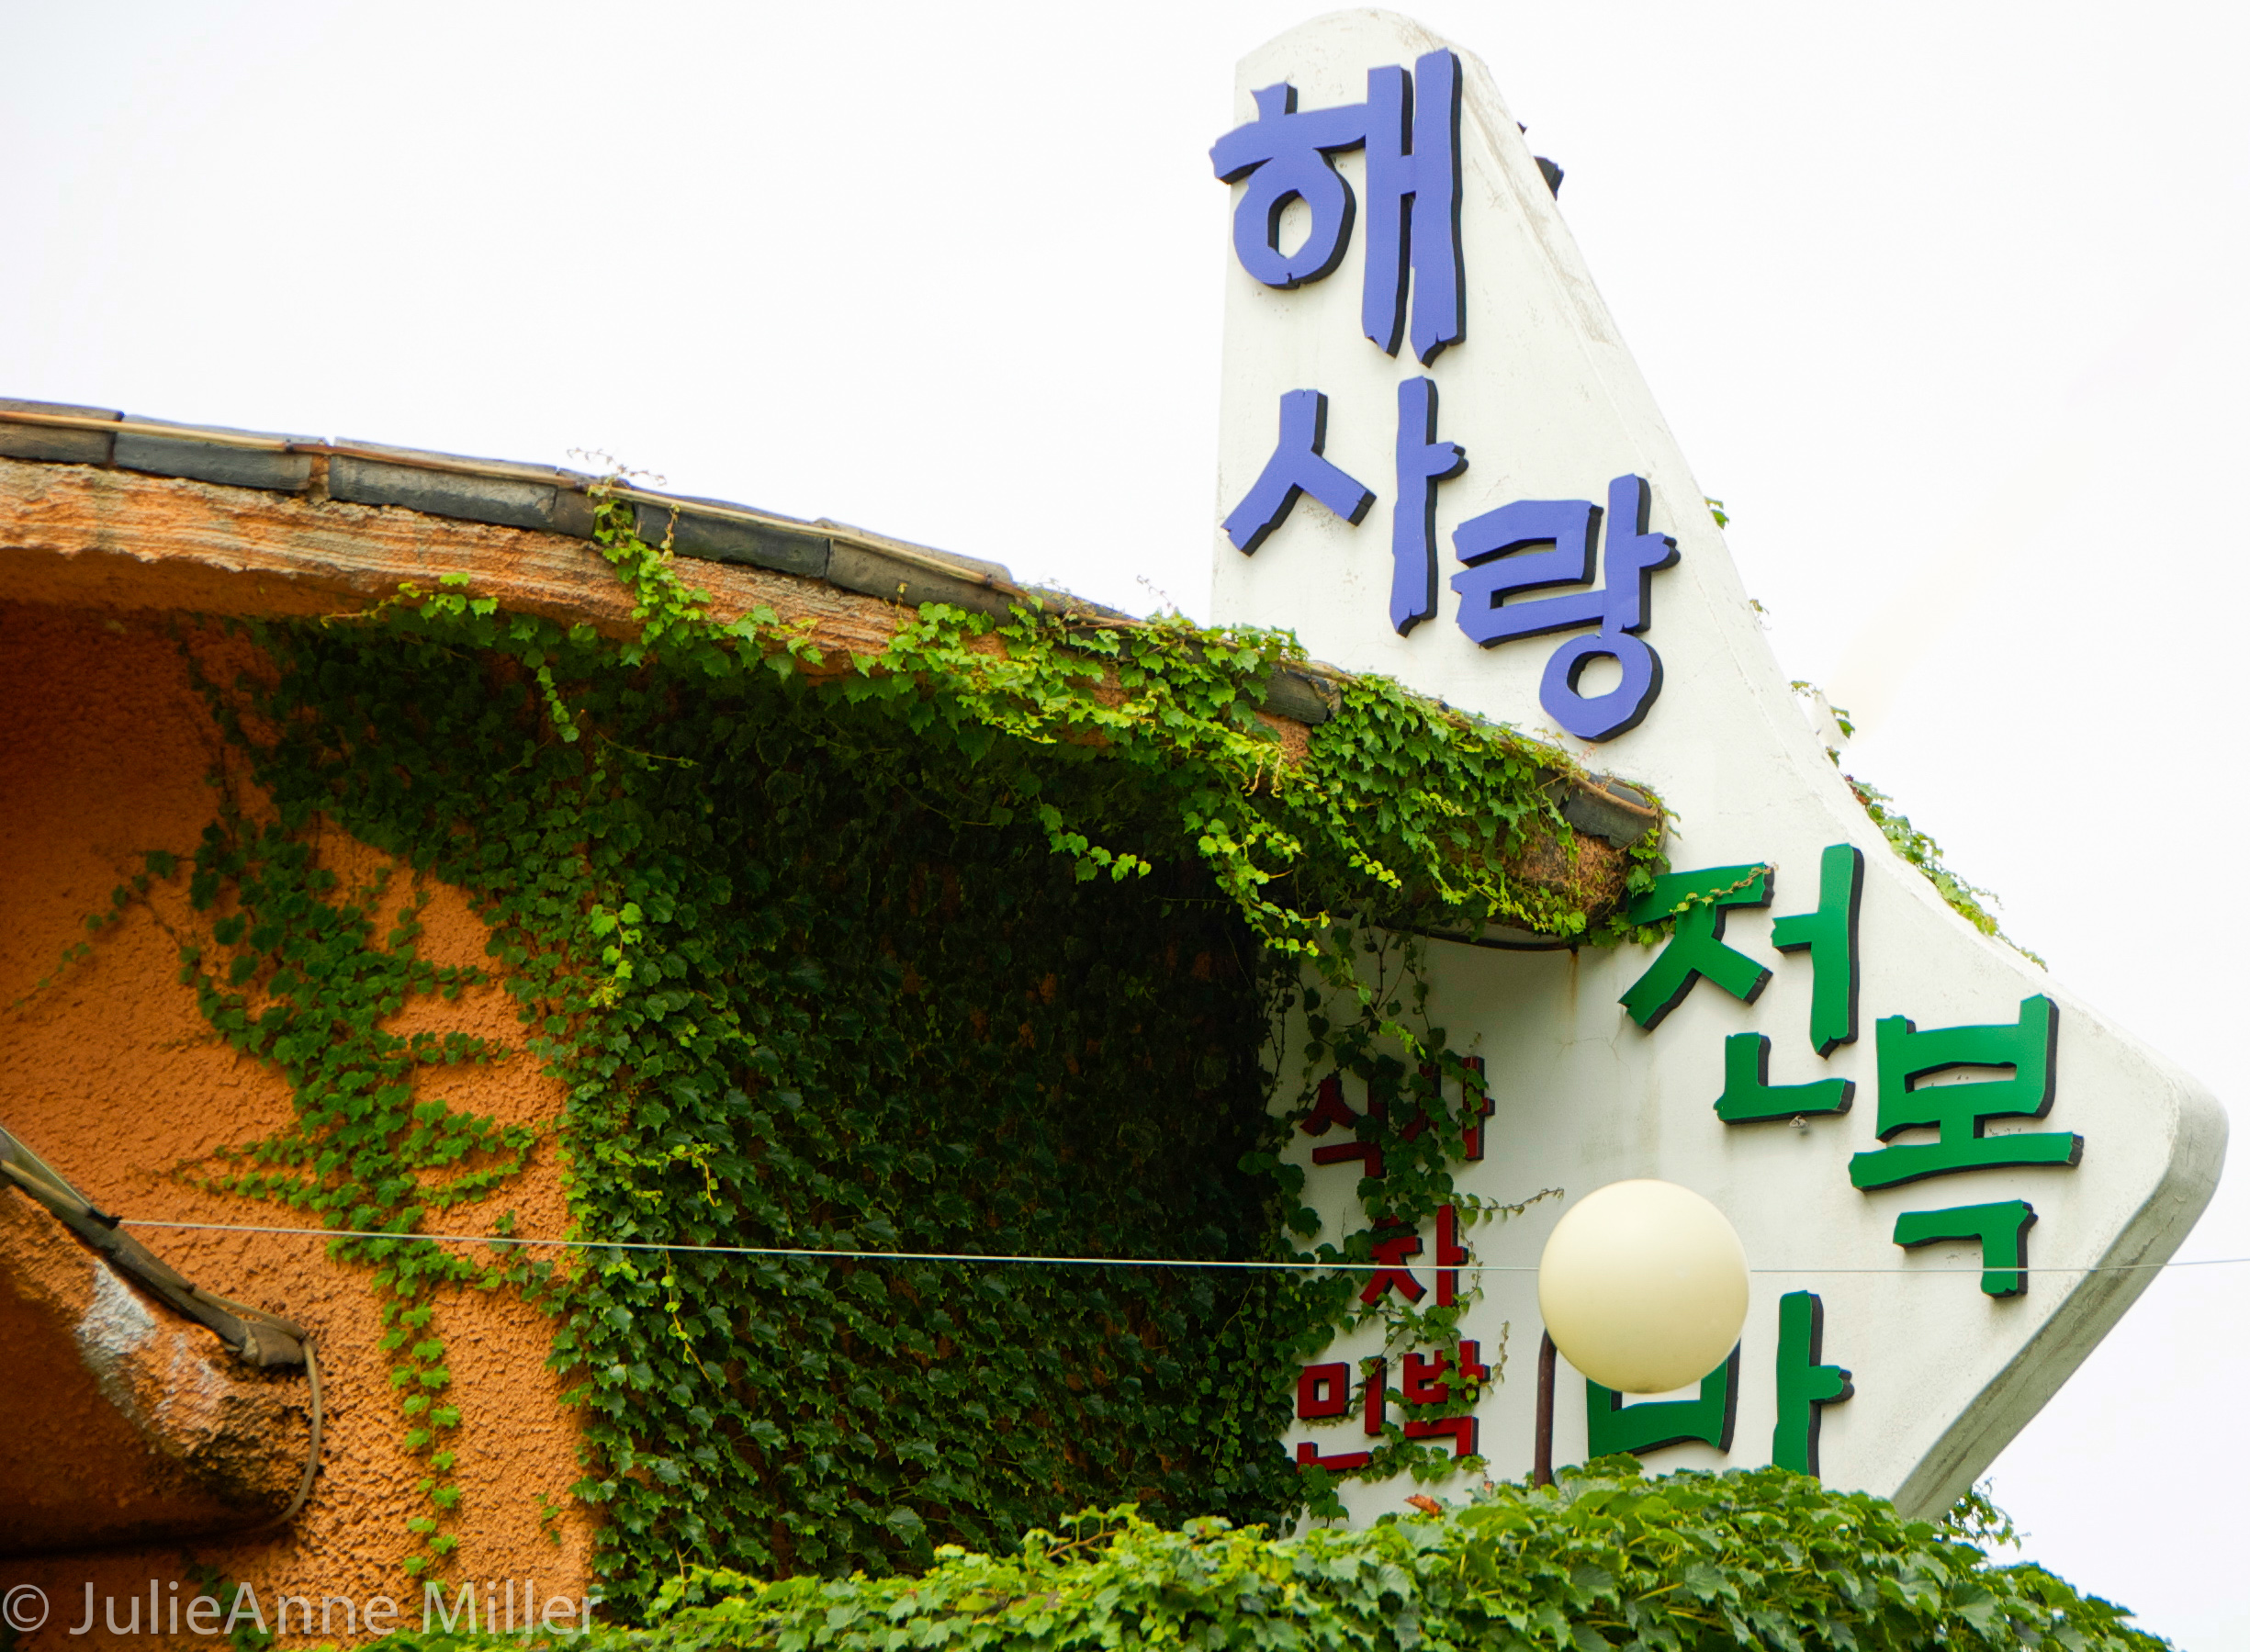 Sea Love Pension House, Namhae